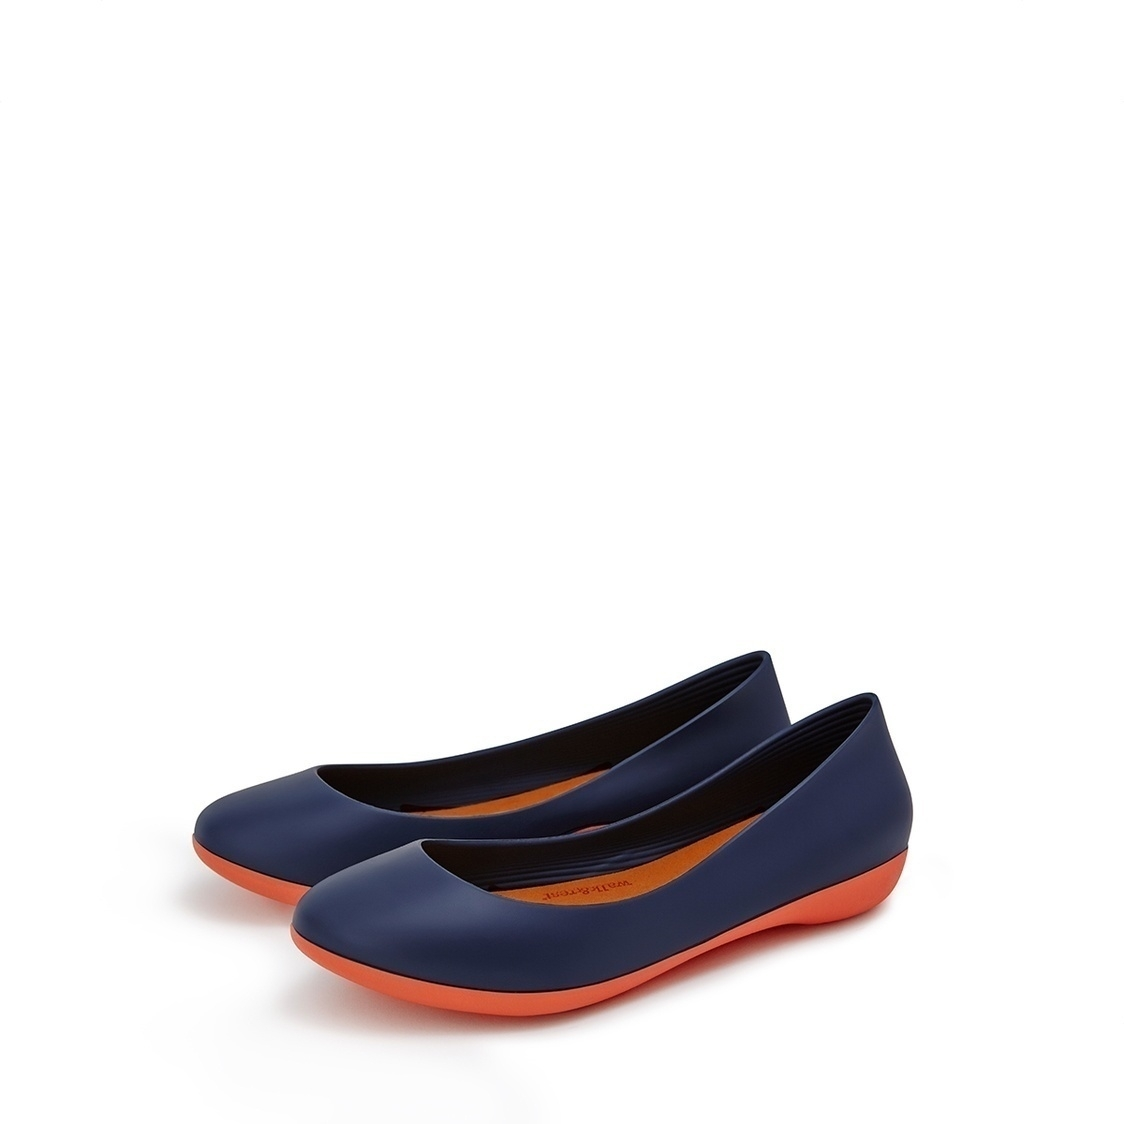 F2 Flat-Rounded Heel height 2cm Deep Navy